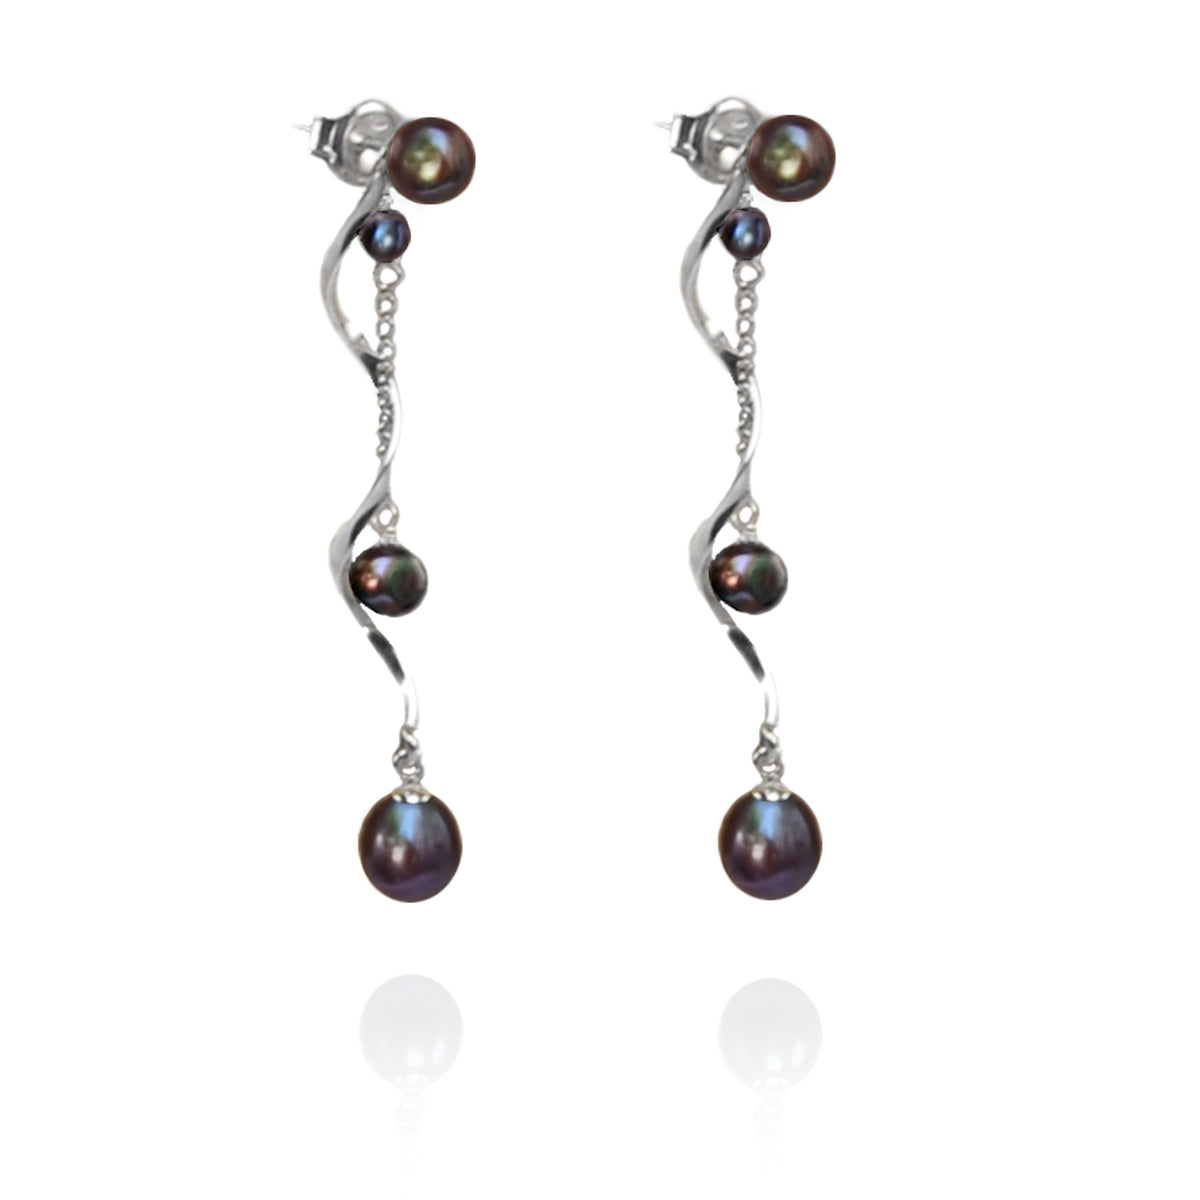 Black Freshwater Pearl & Twisted Silver 'Build Your Own' Drop Earrings